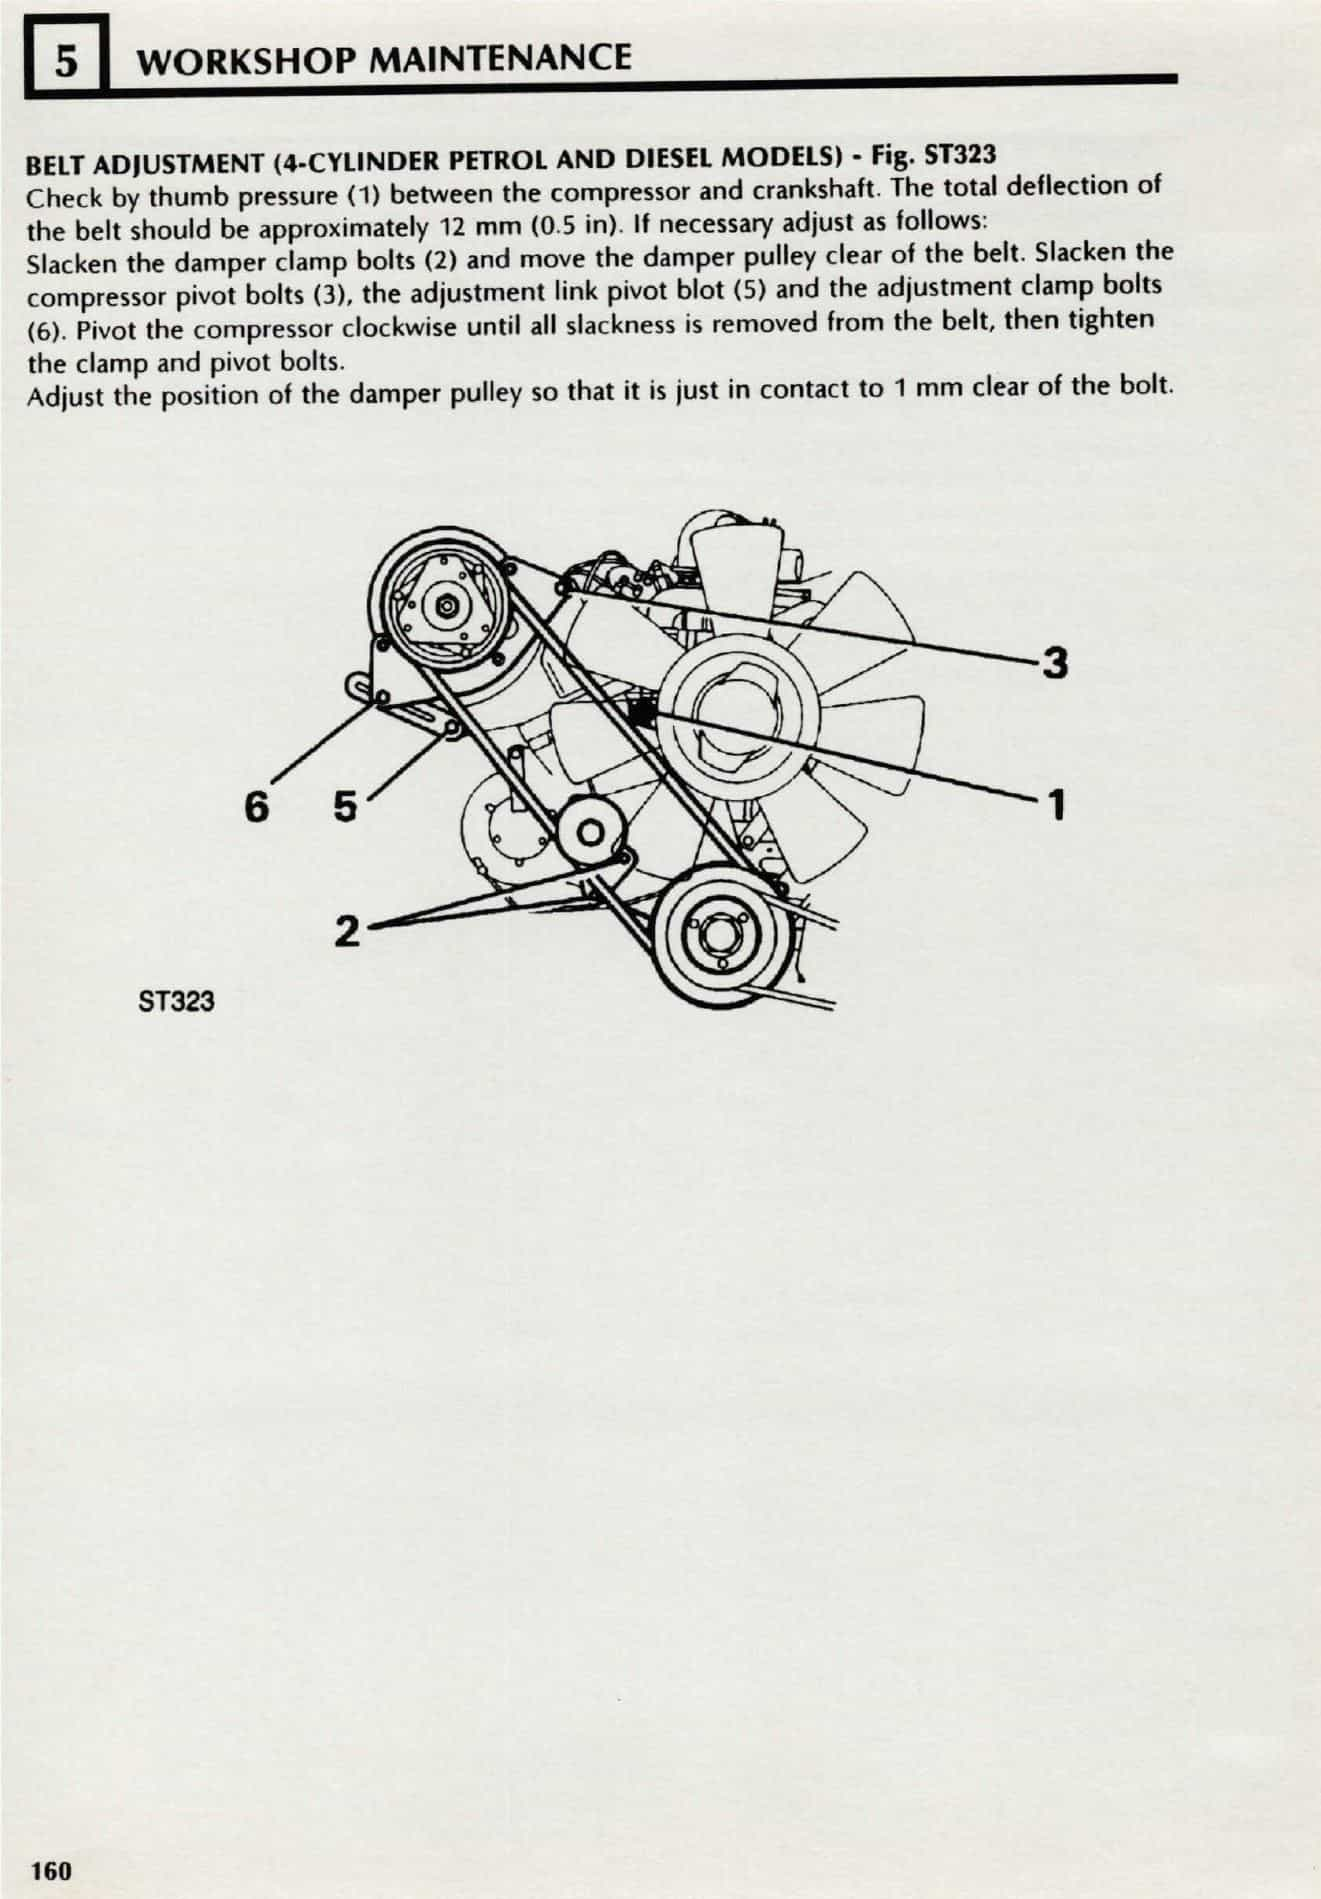 PracticalSeries: Land Rover Defender Owner's Manual